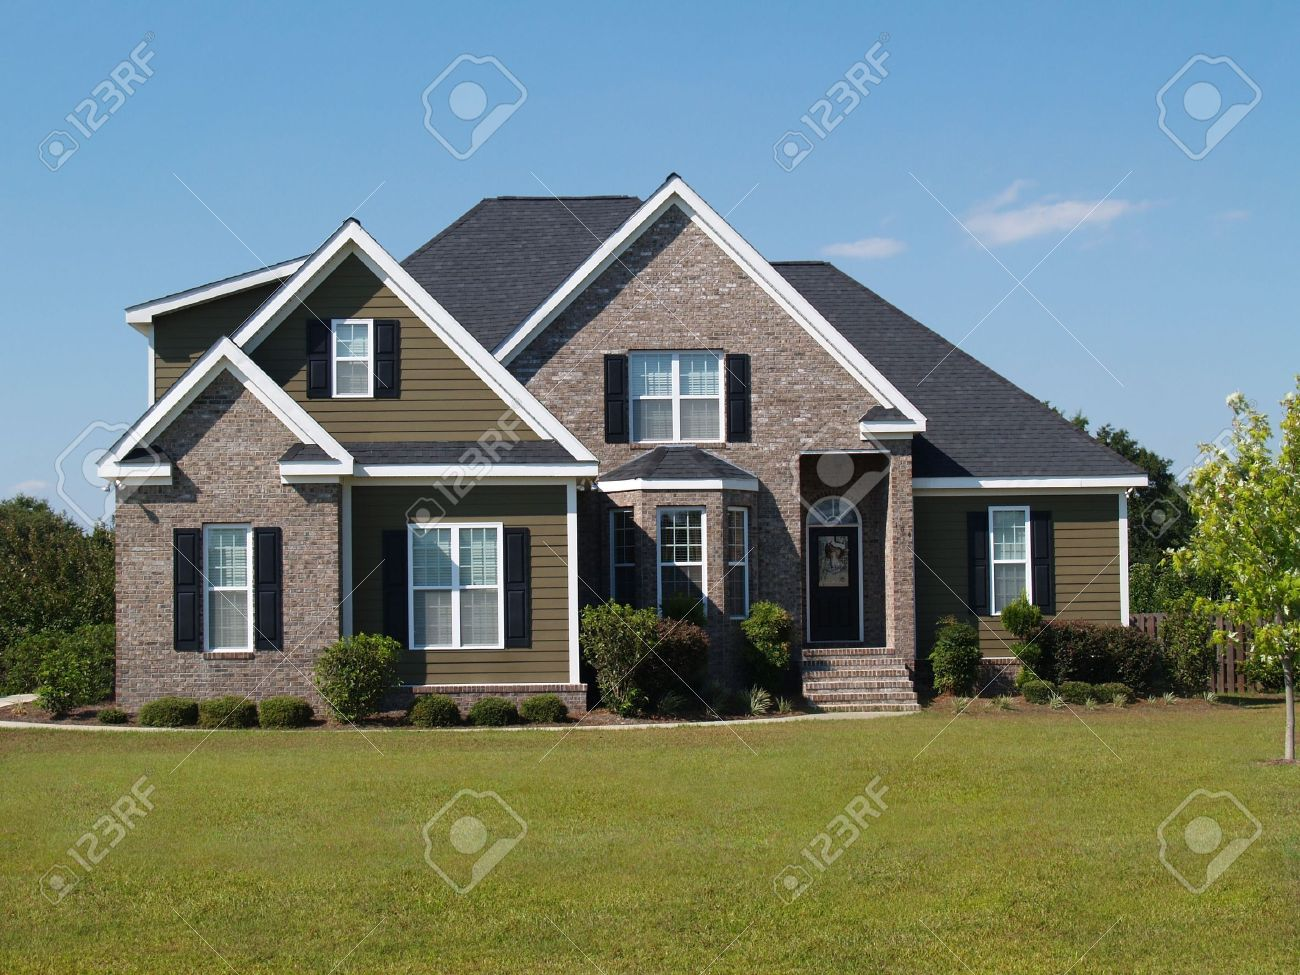 Two story brick and vinyl residential home with bay window. - 5580911